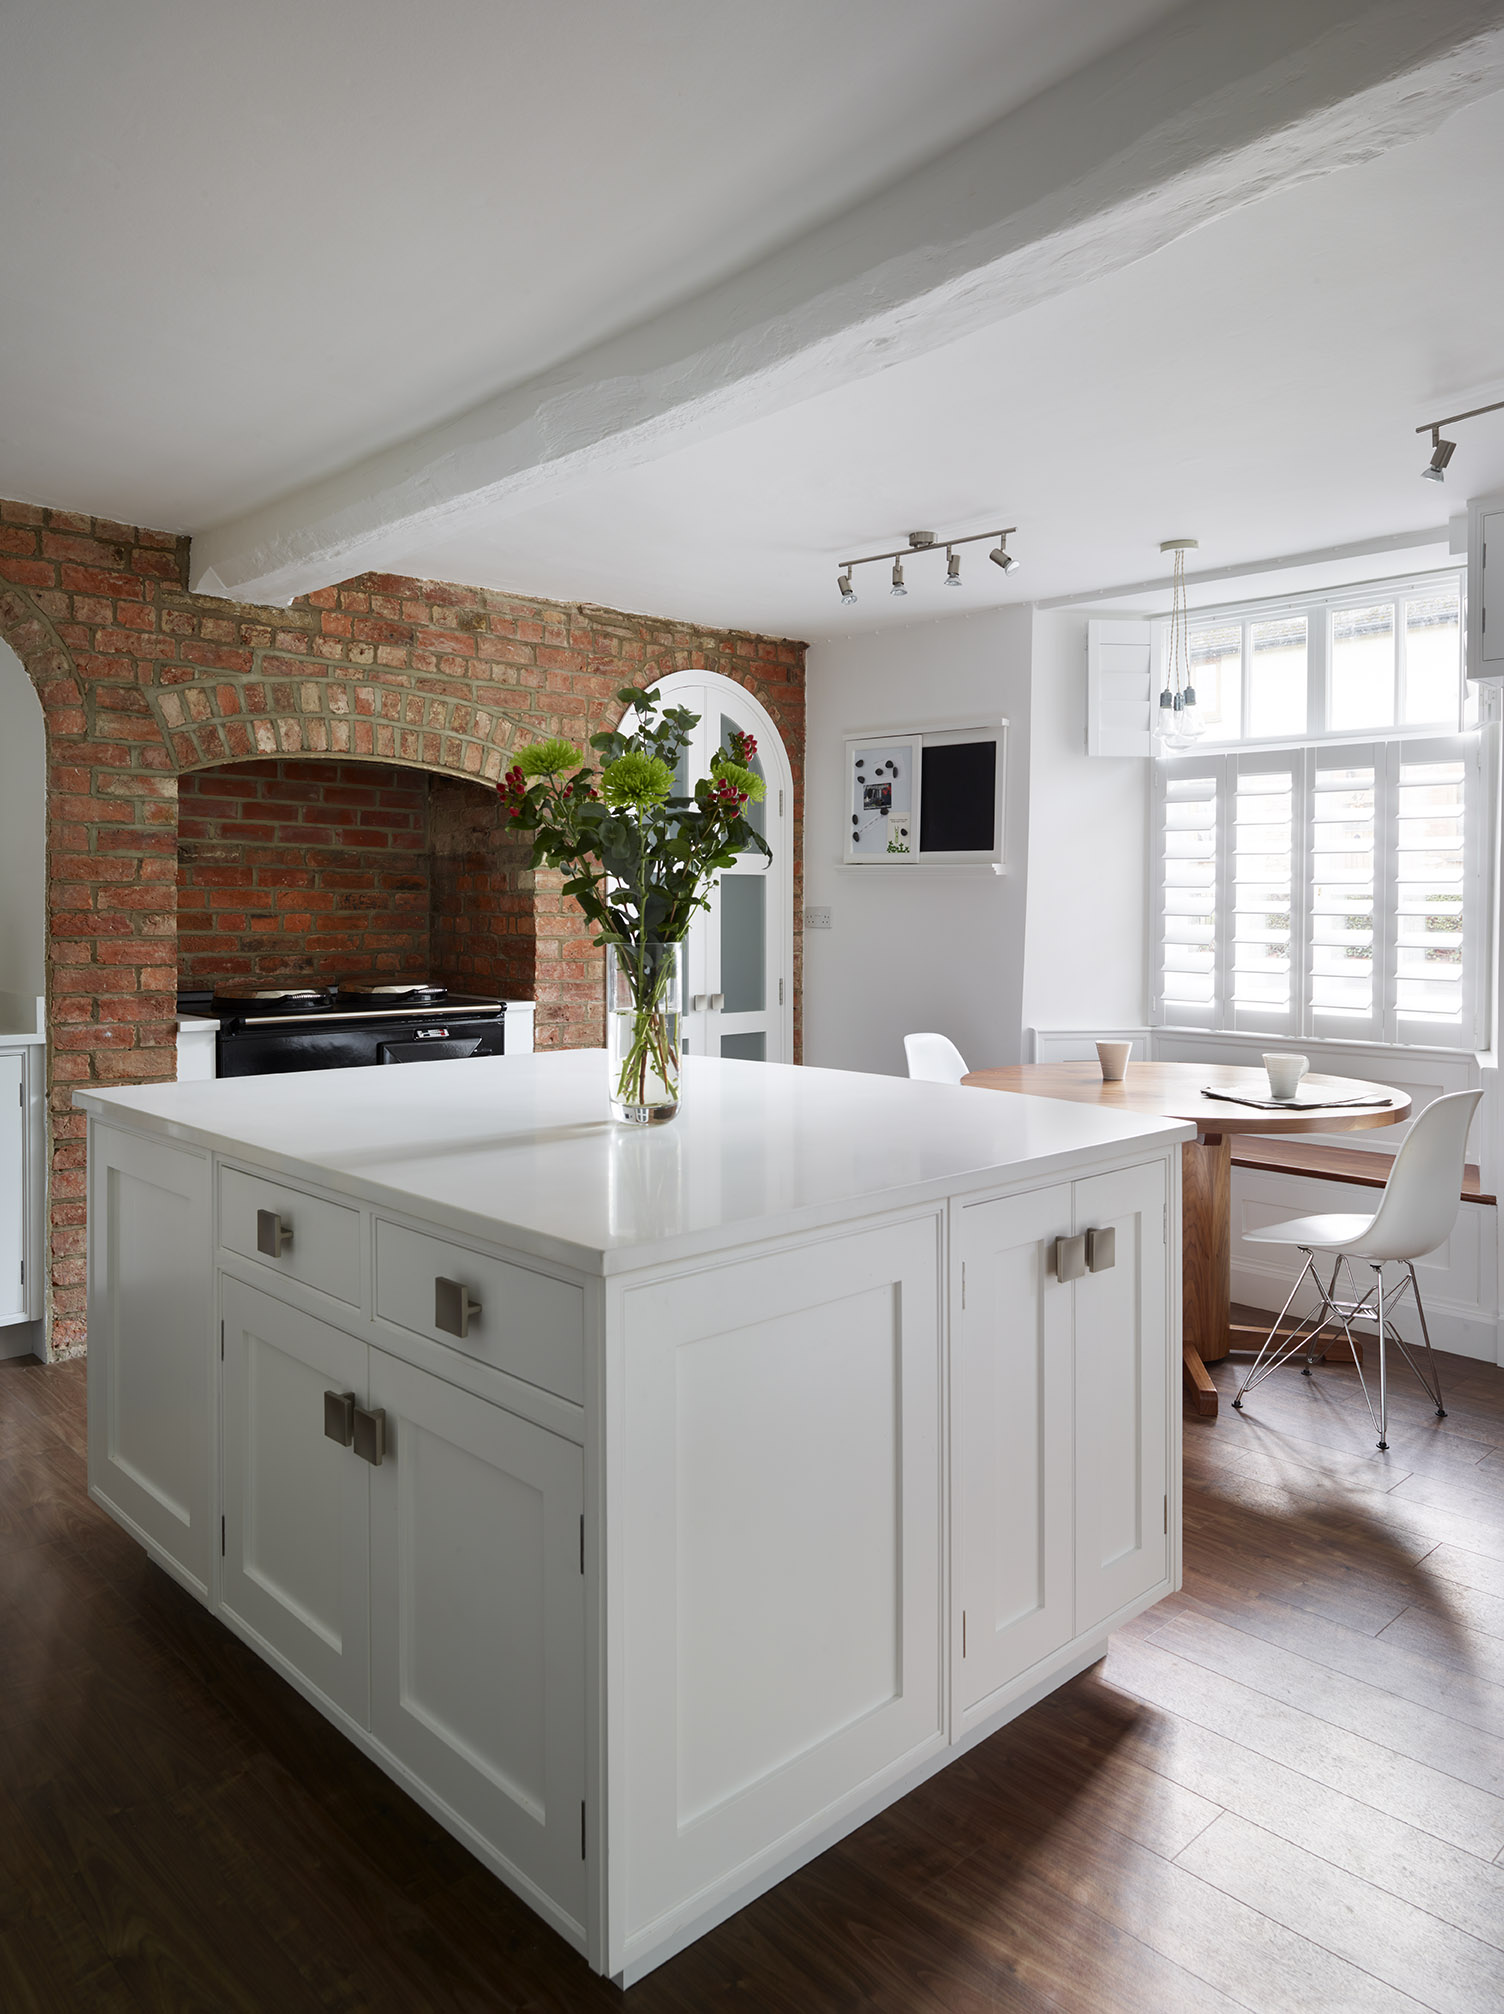 Stoke Goldington - Light kitchen island with contrasting exposed brick wall